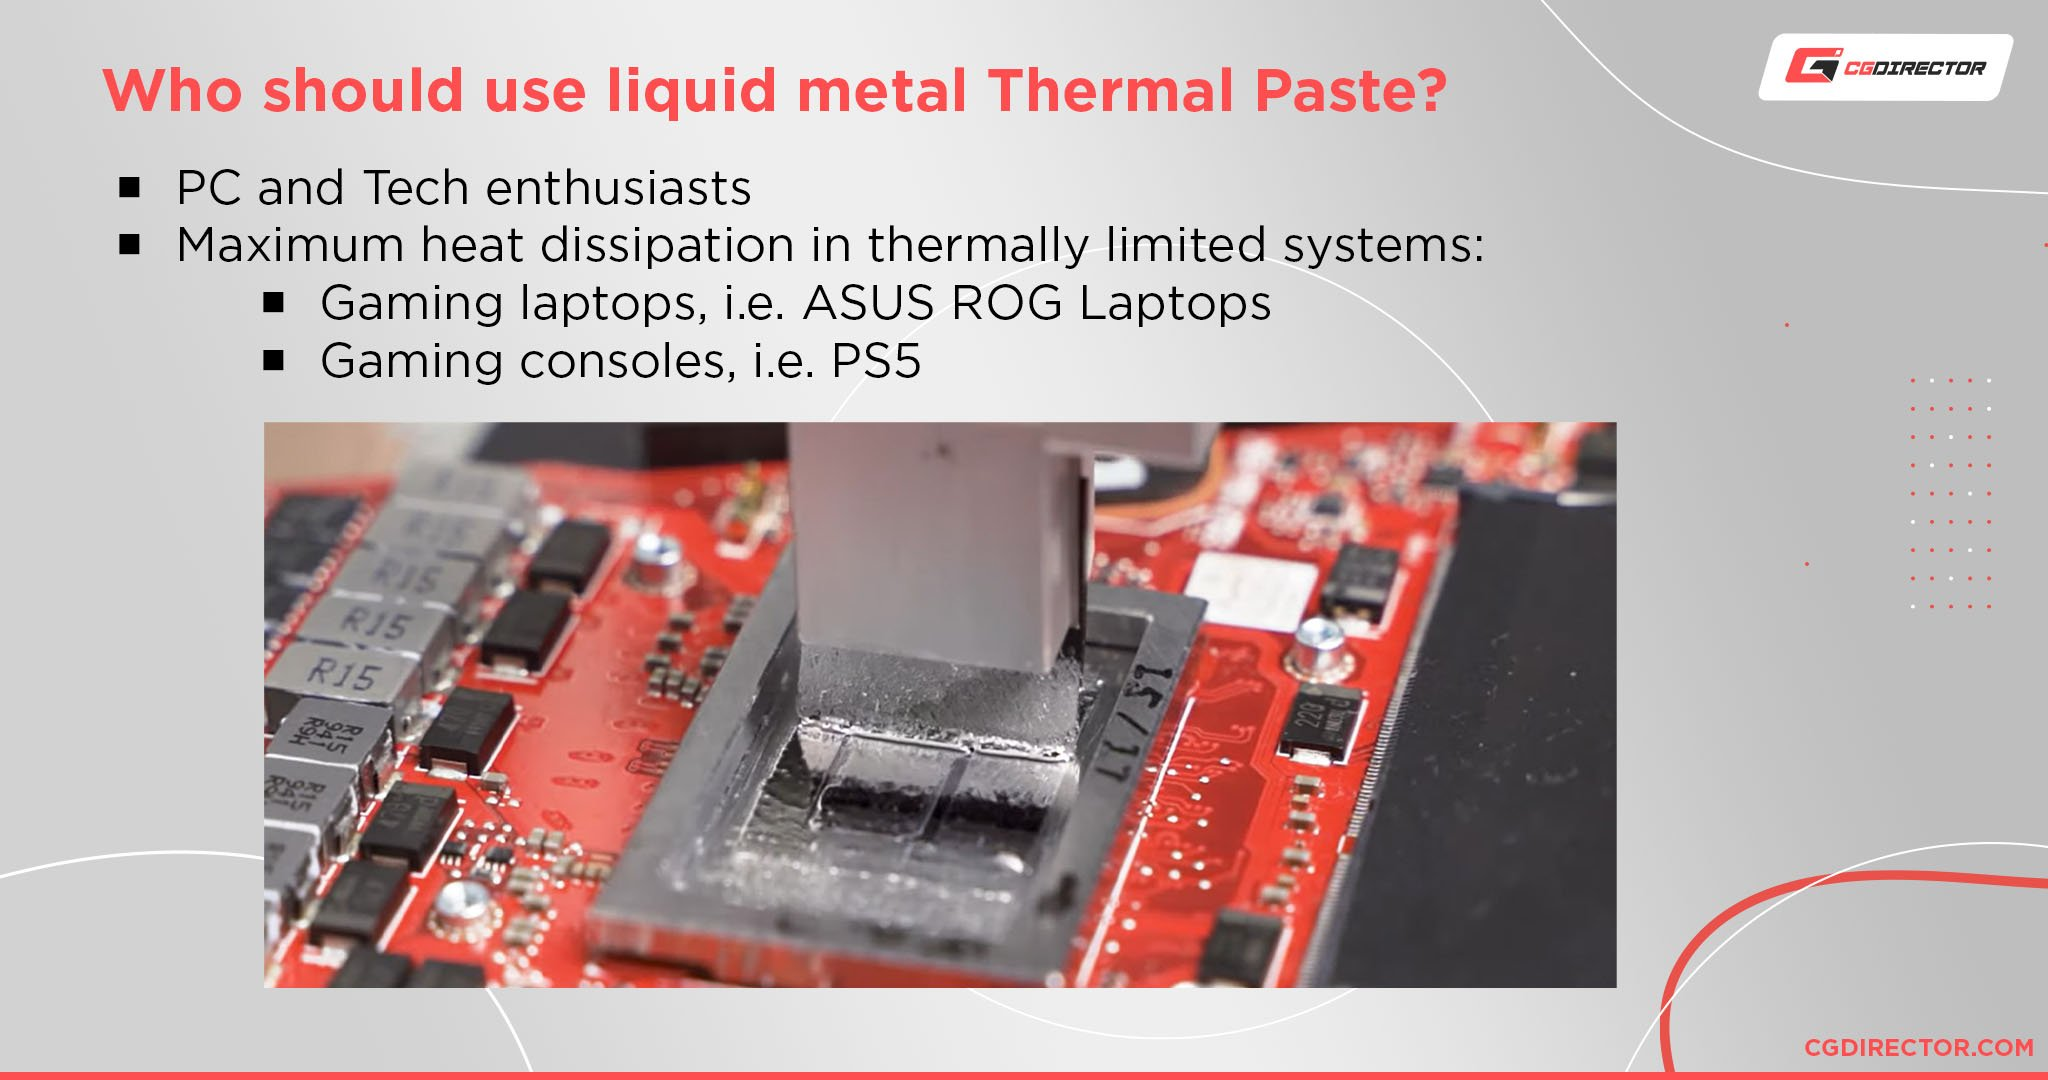 Who should use liquid metal Thermal Paste